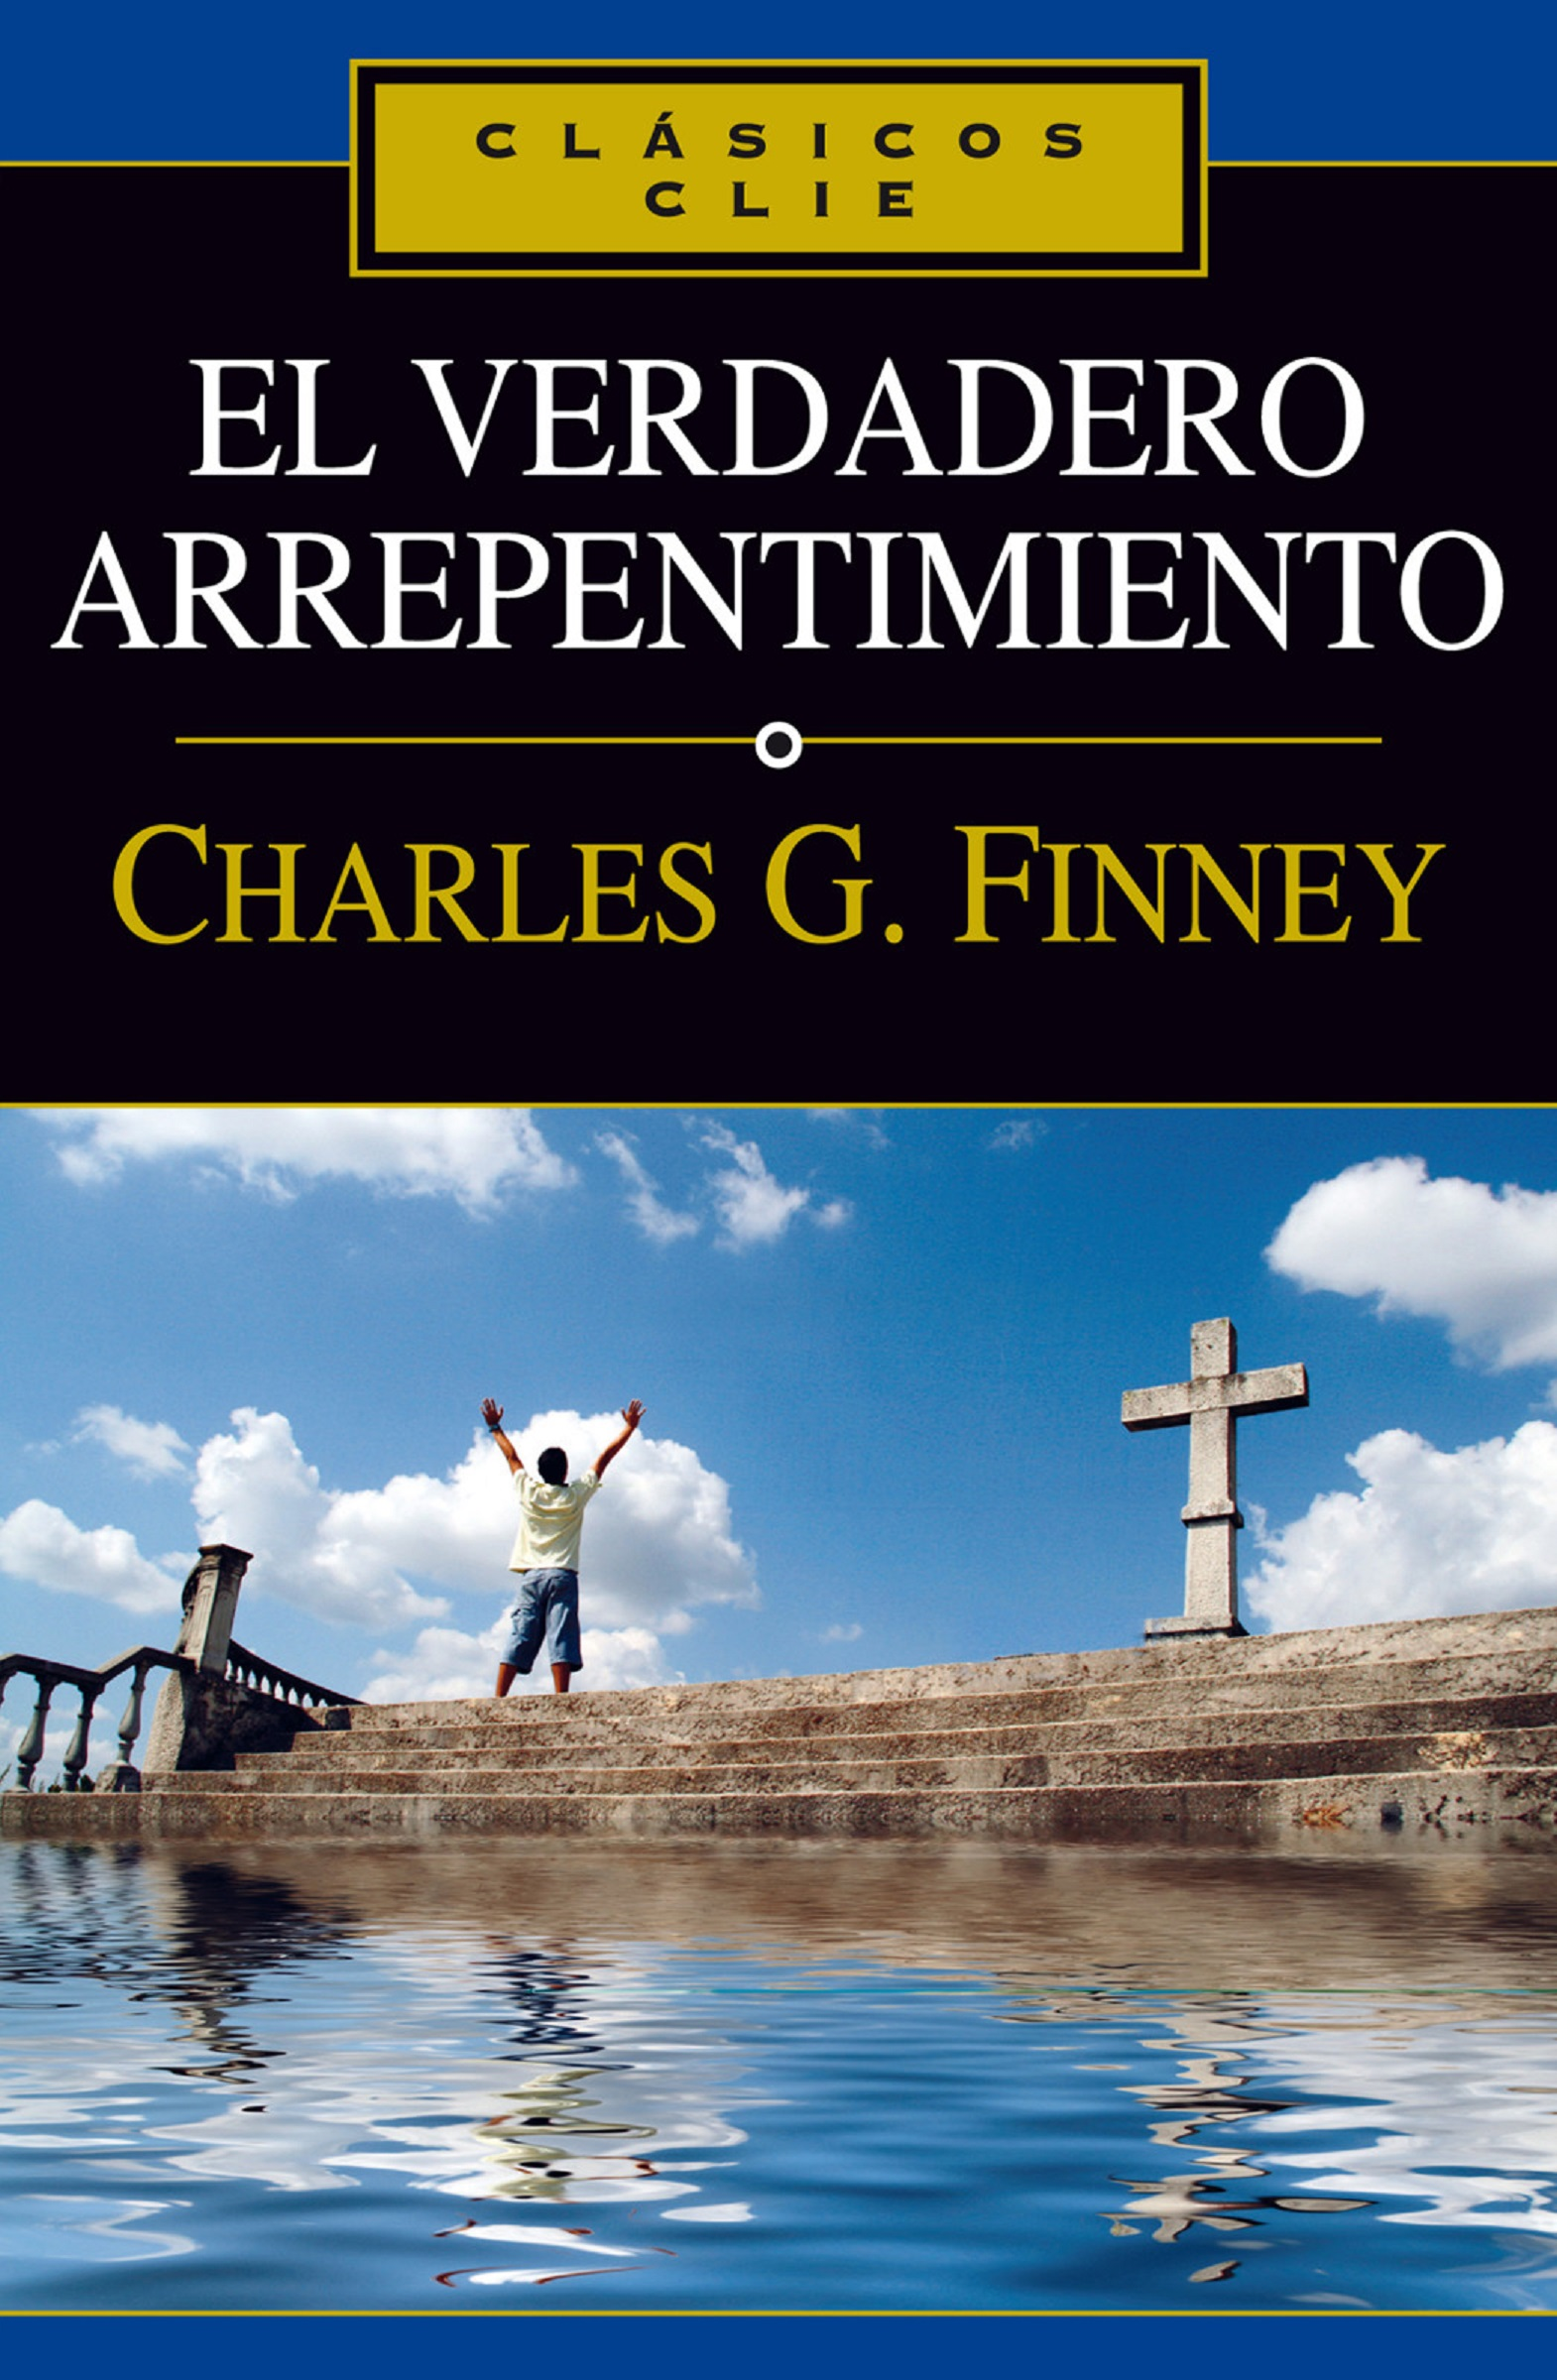 Charles G. Finney El verdadero arrepentimiento charles g finney christ our advocate